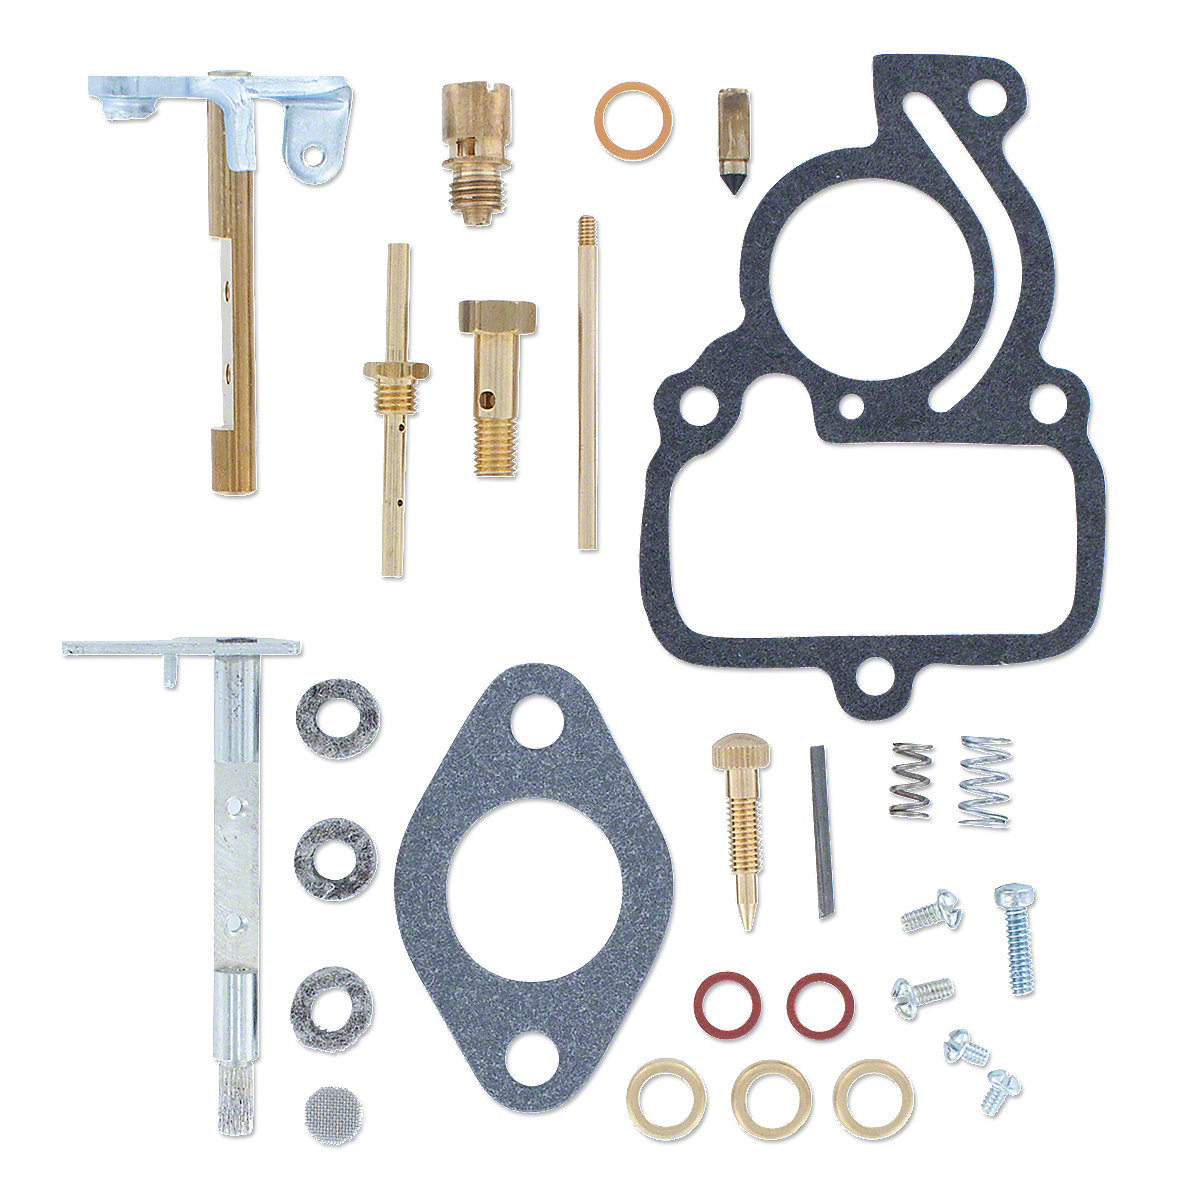 IHS825 Farmall Cub Complete Carburetor Repair Kit